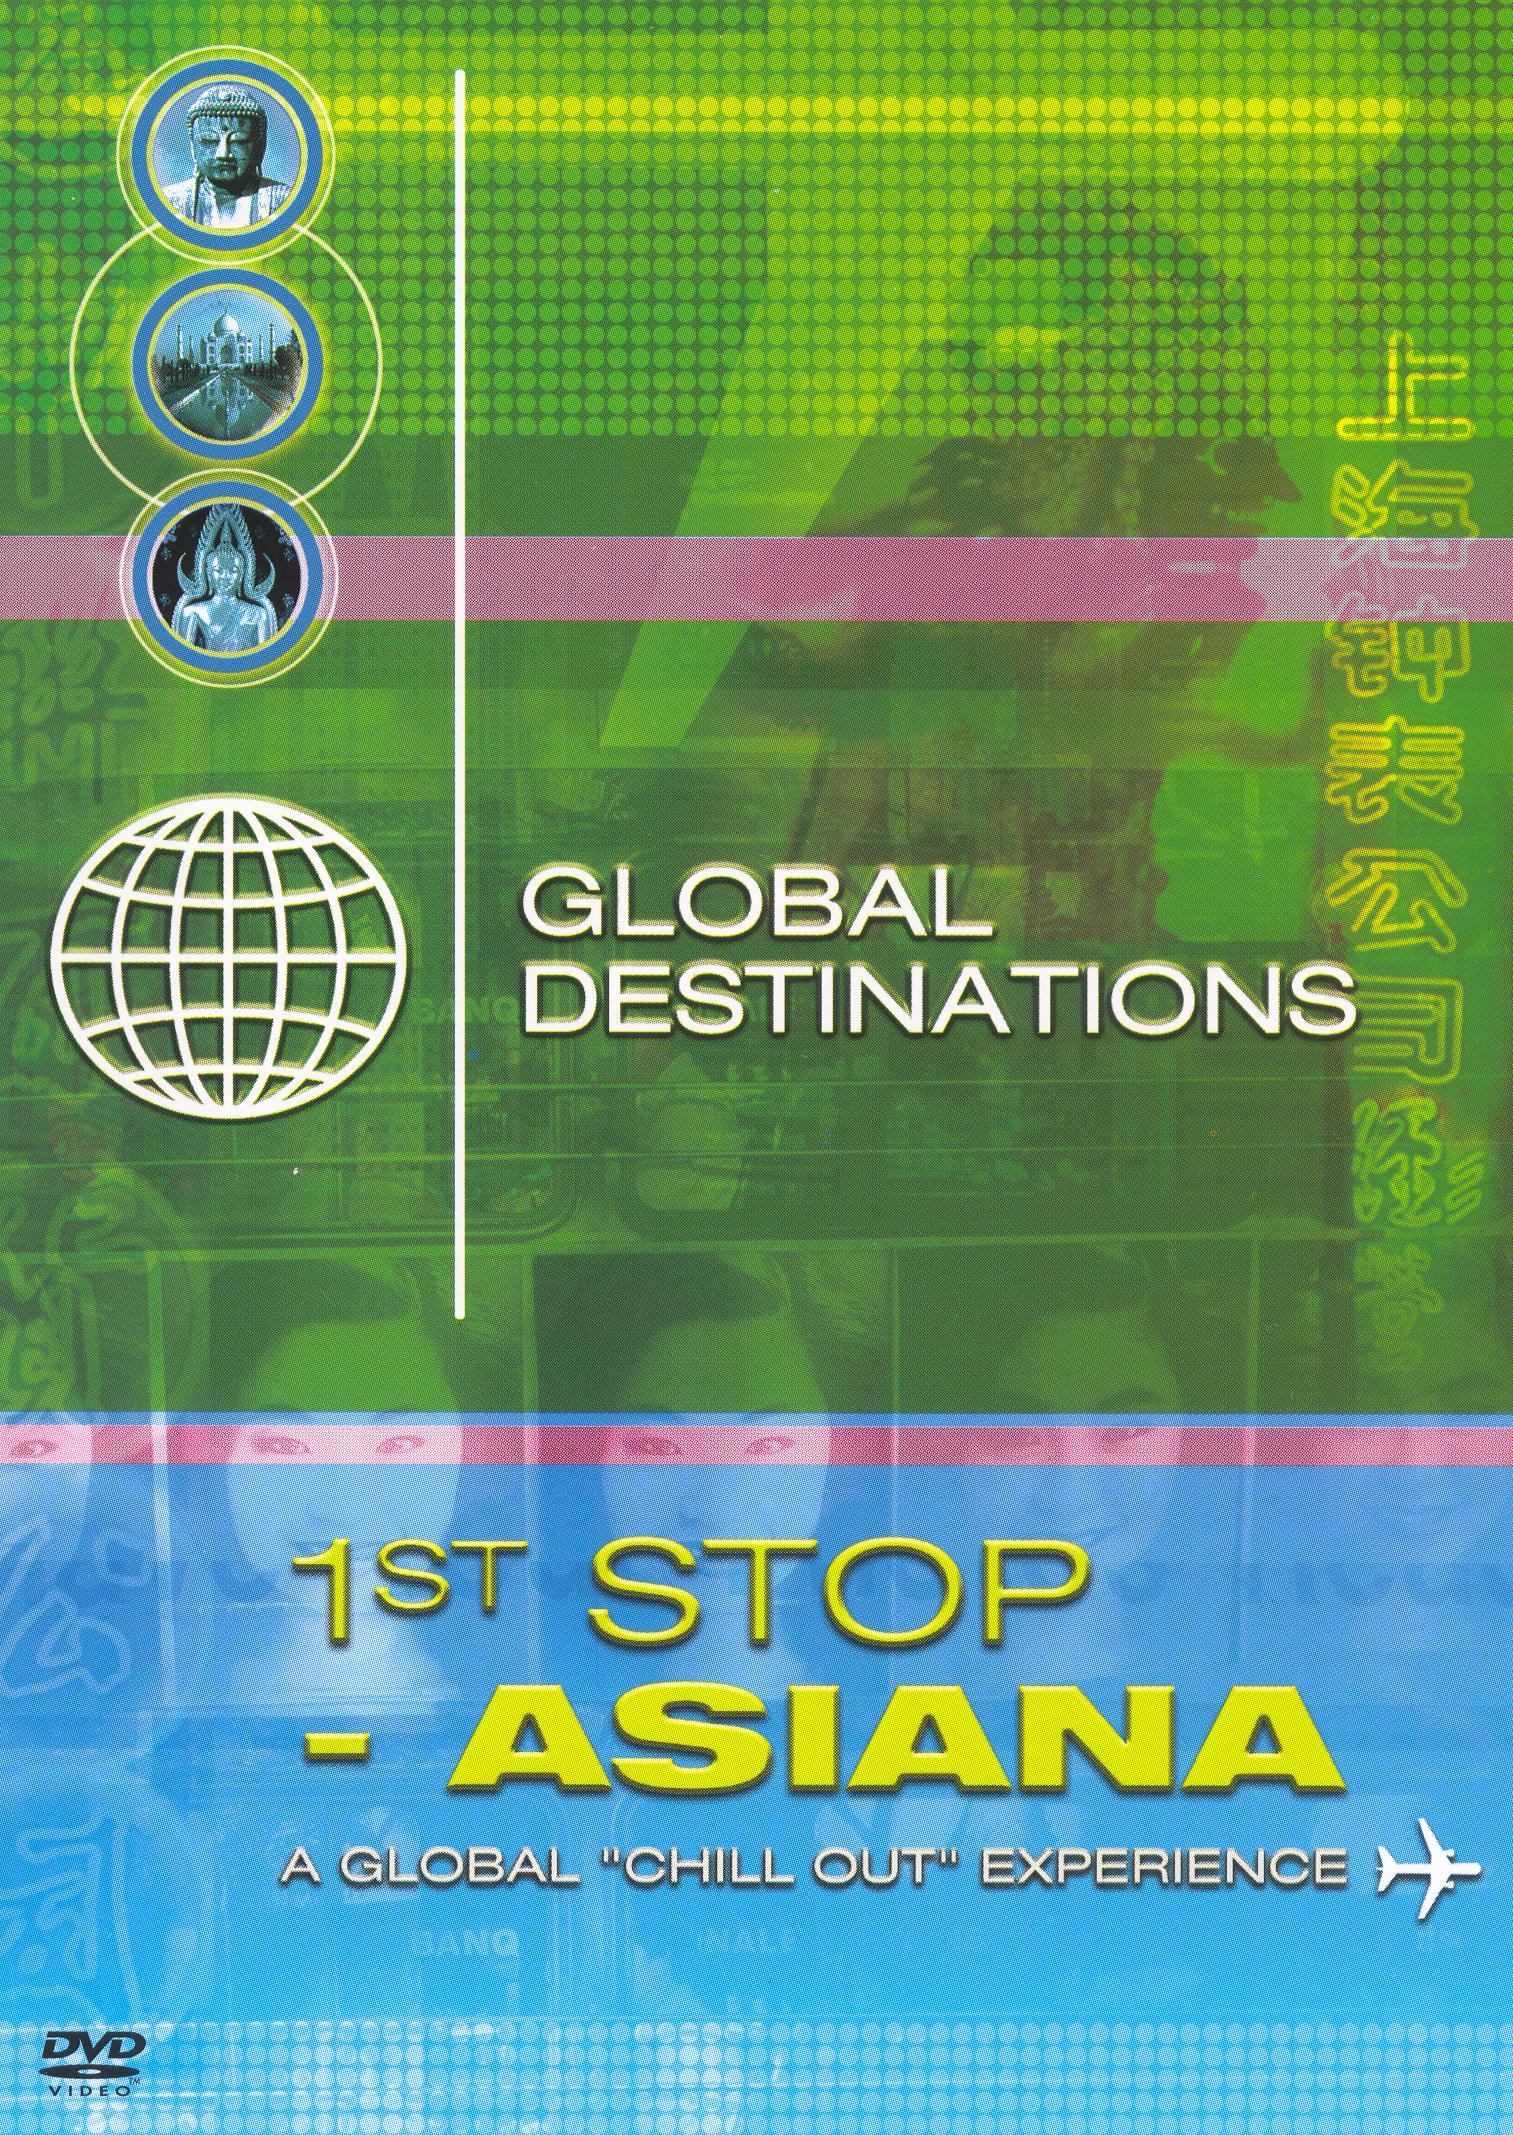 Global Destinations: 1st Stop - Asiana